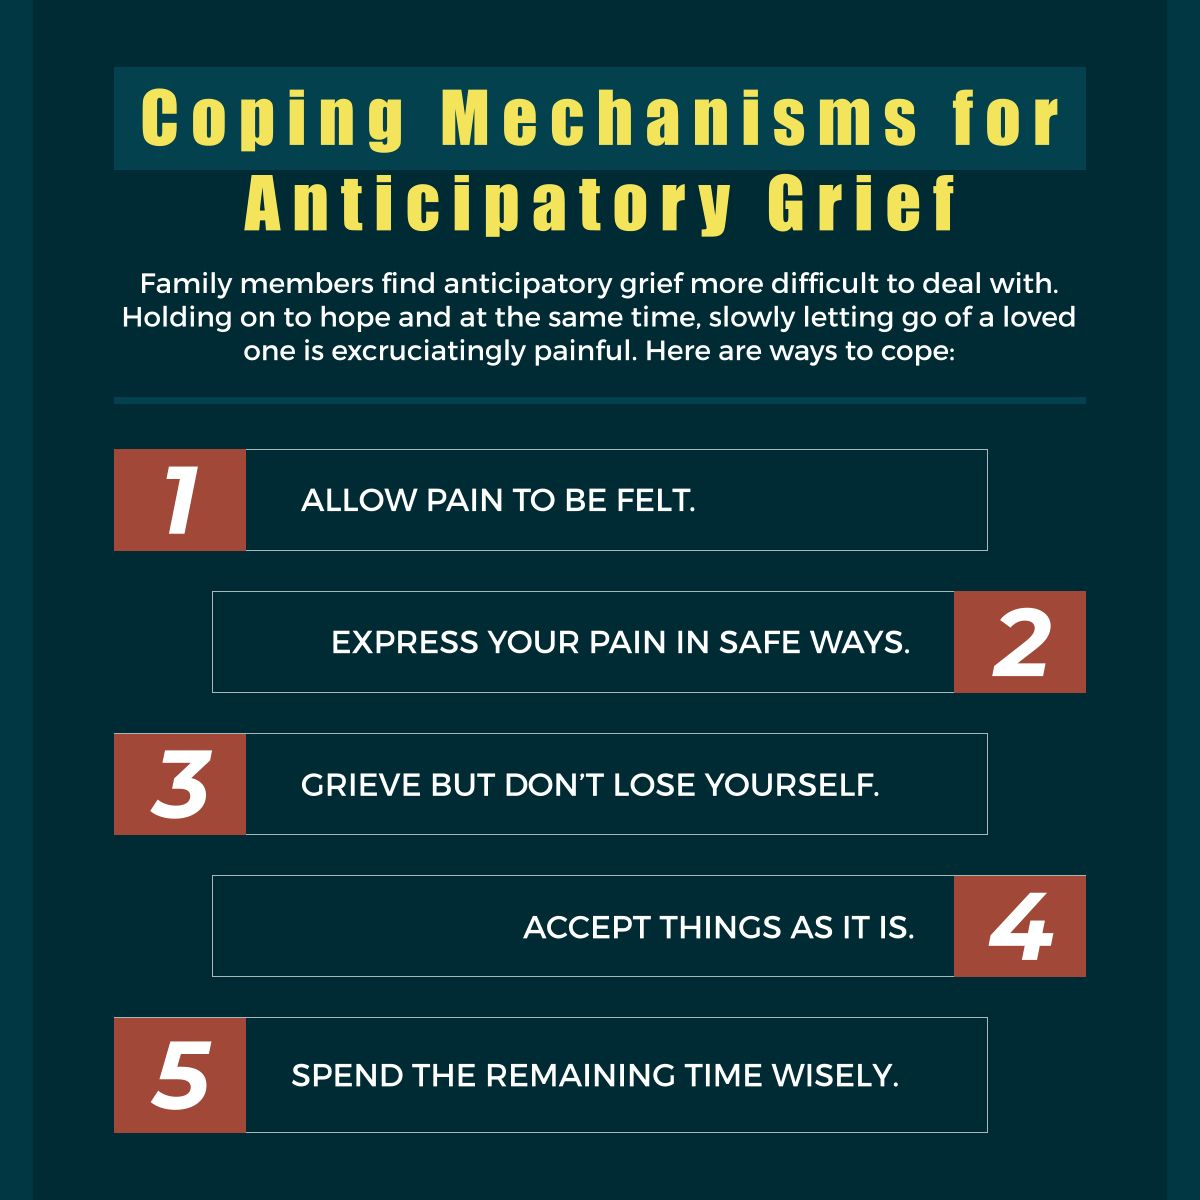 Coping Mechanisms For Anticipatory Grief